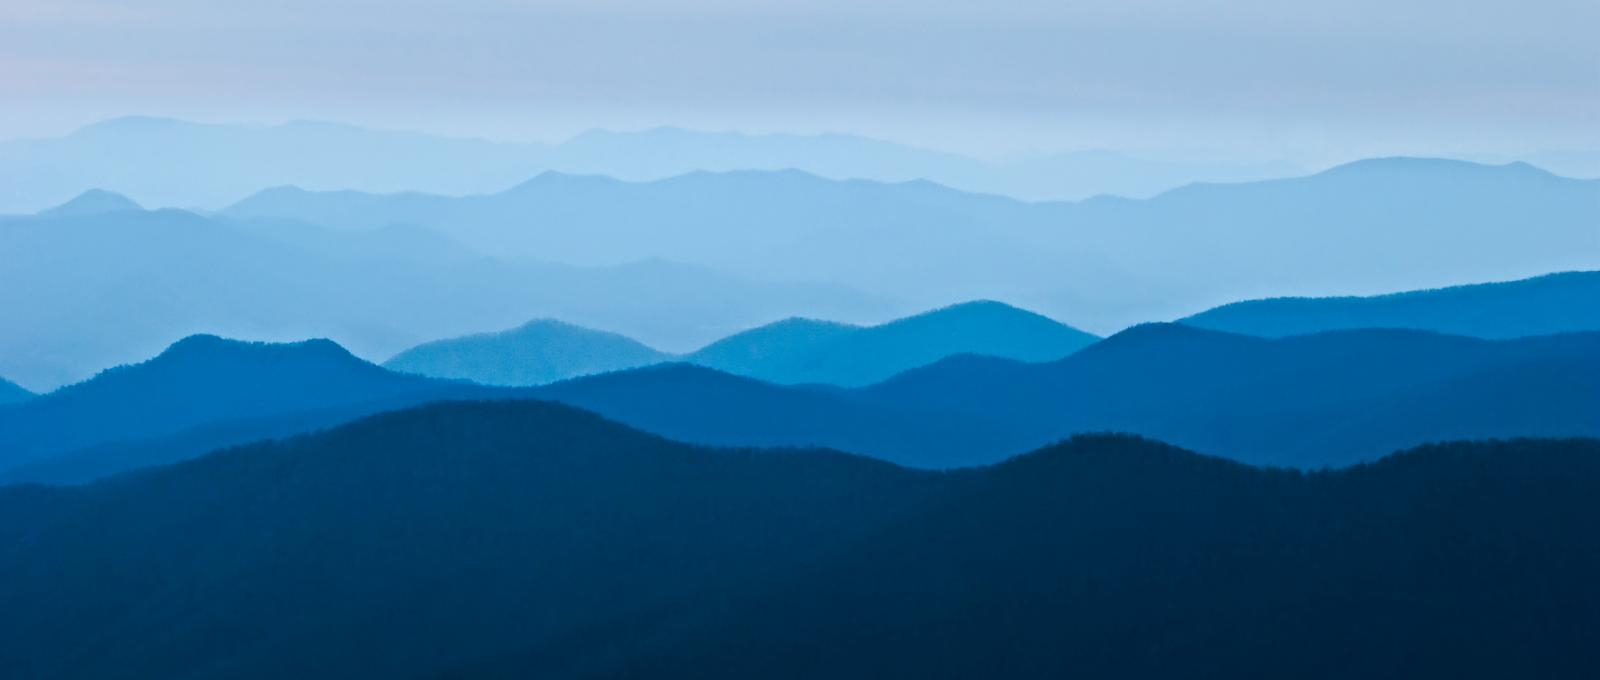 Blue Mountain Wallpapers Posted By Christopher Walker